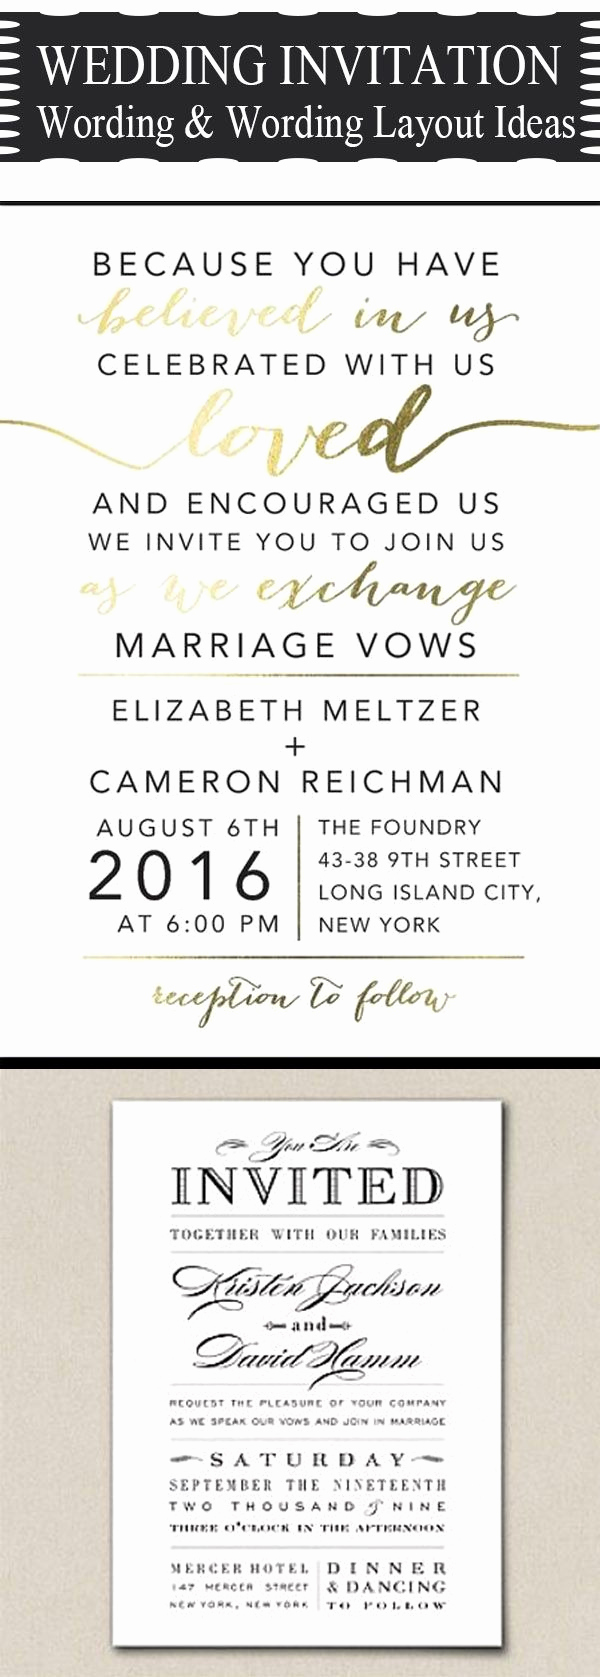 Pinterest Wedding Invitation Wording Inspirational 25 Best Ideas About Wedding Invitation Wording On